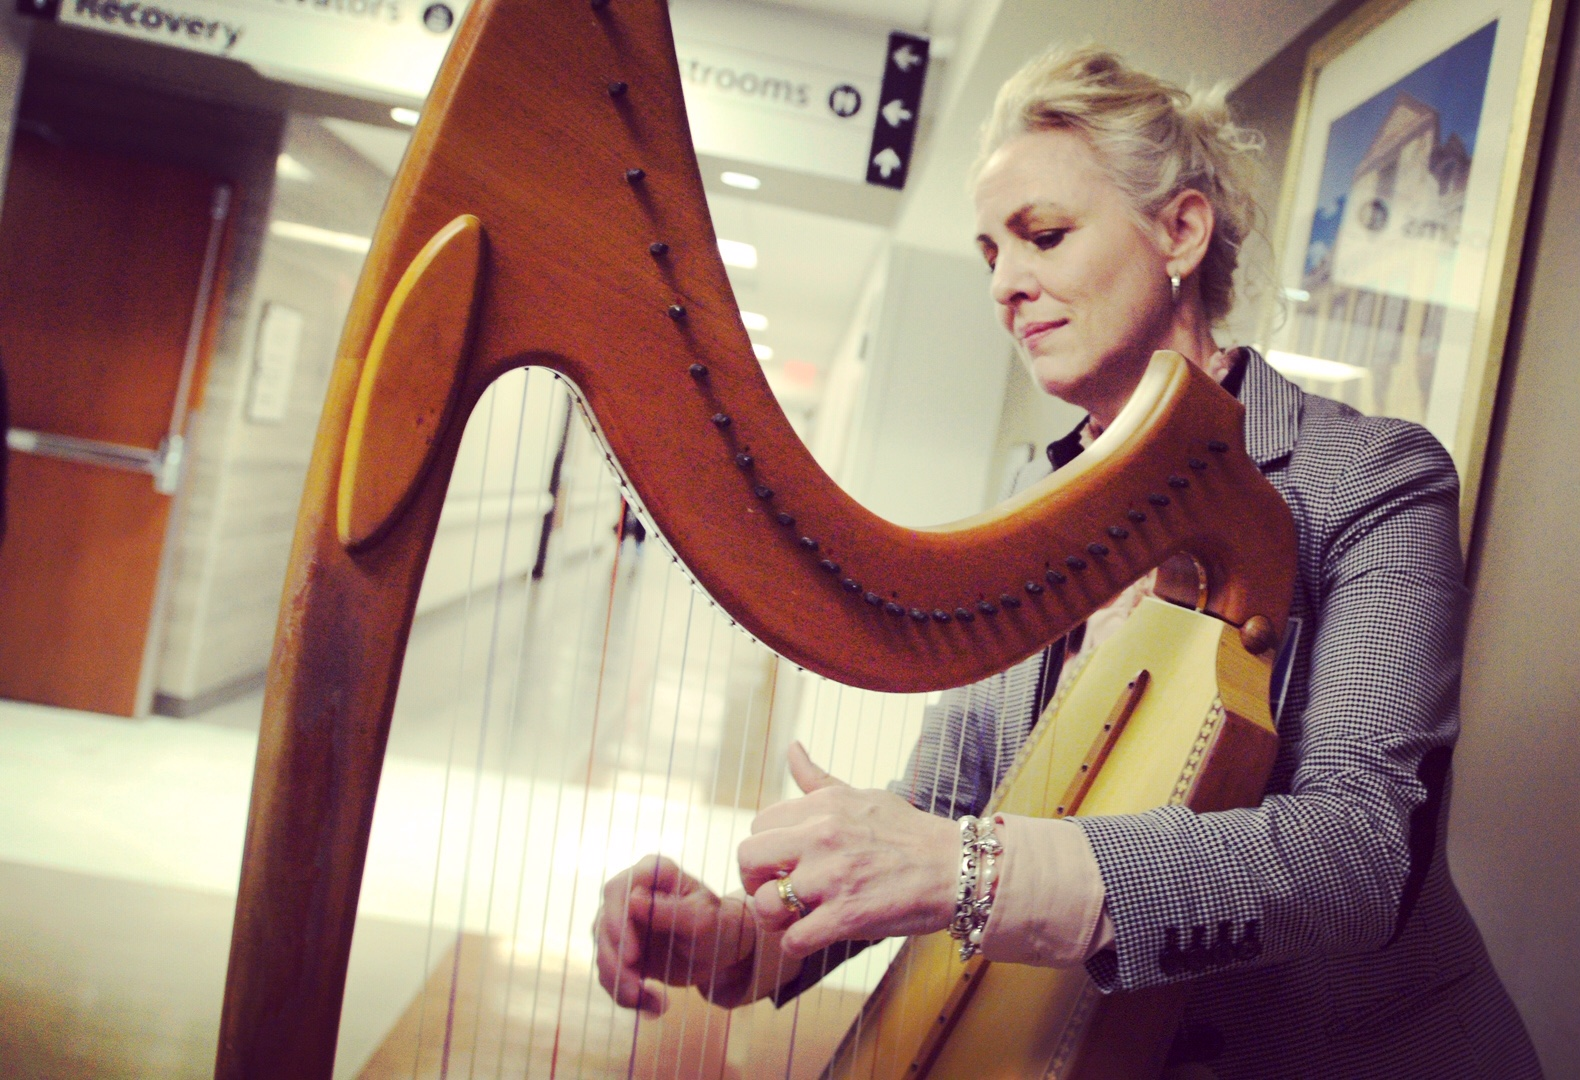 Caption: Harpist/Music Thanatologist Terese Cullen, Credit: photo by Tony Morris 2020